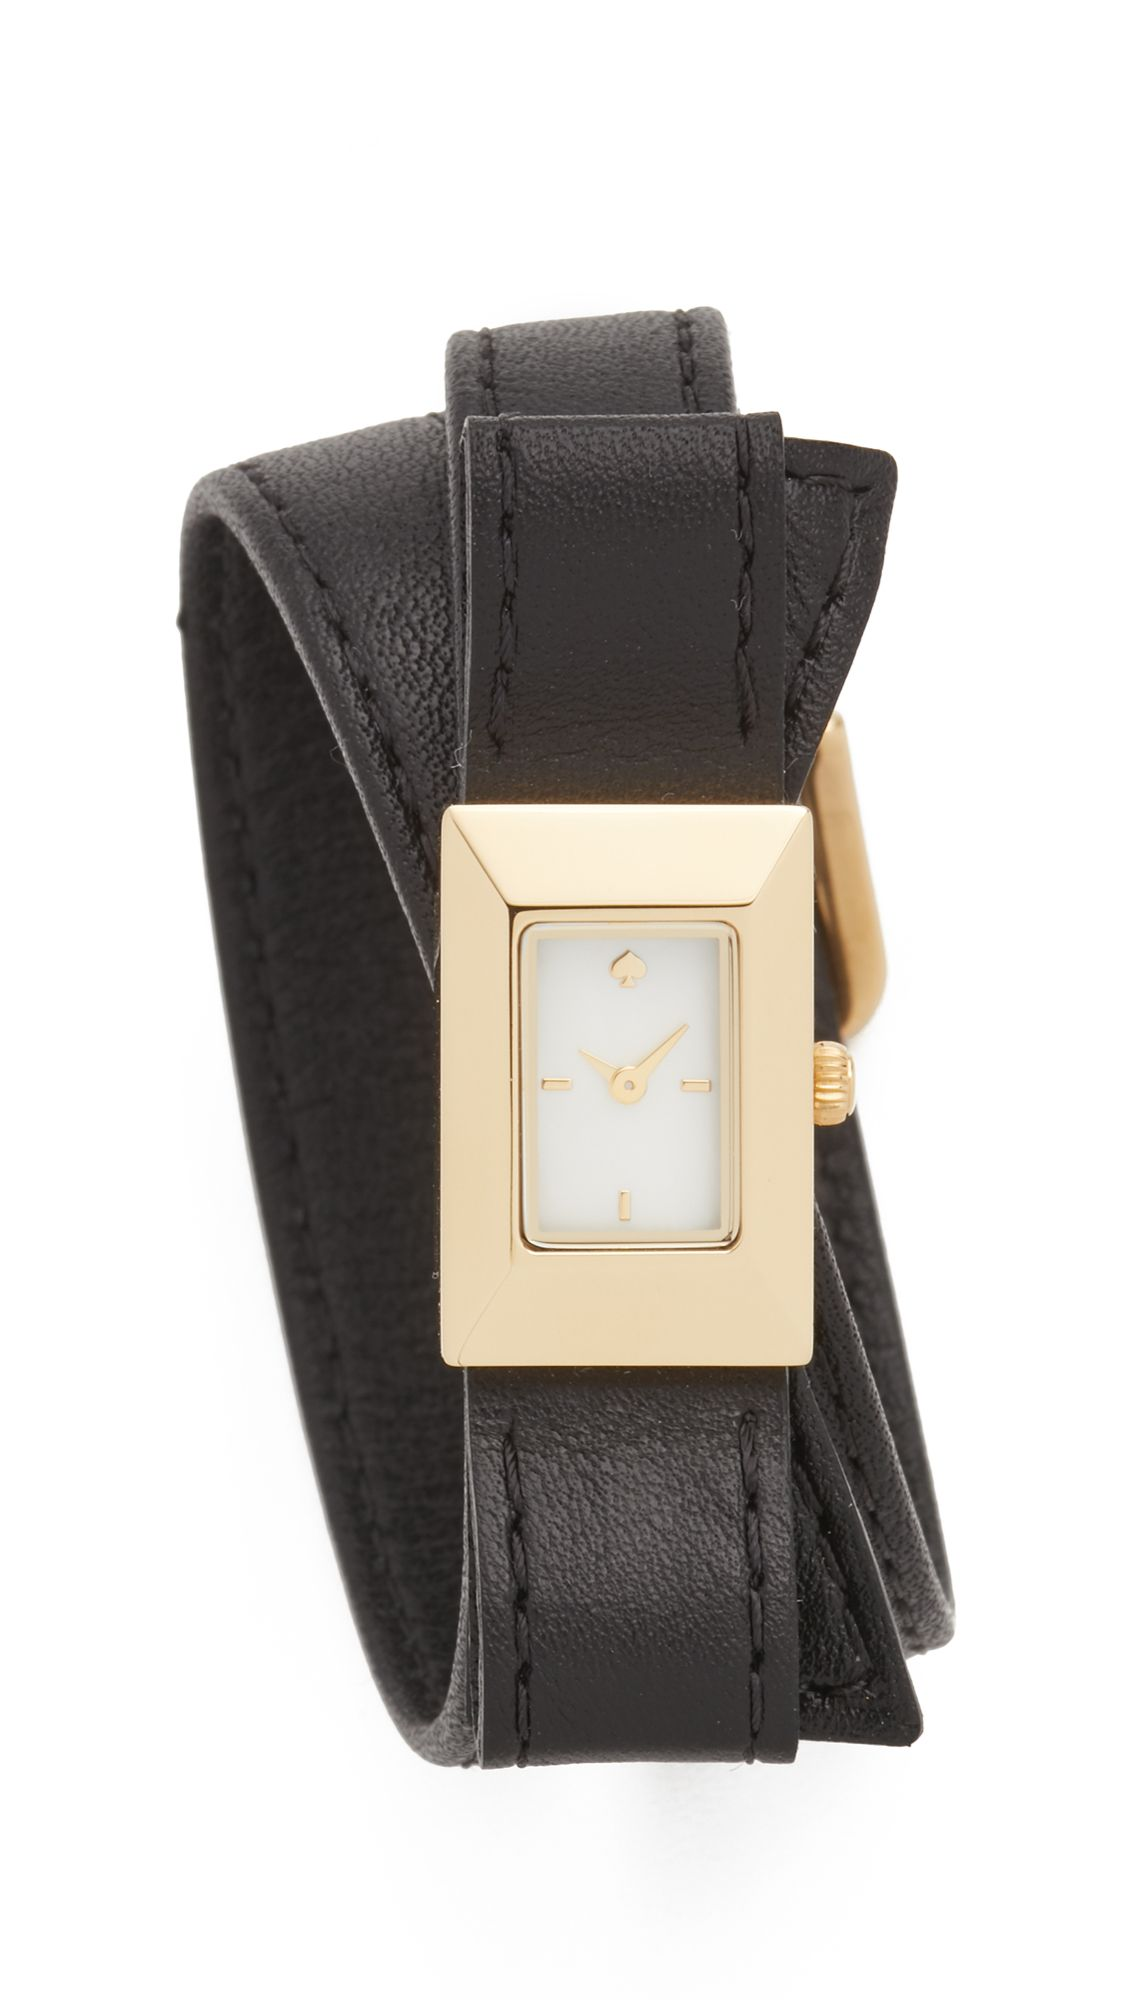 Kenmare Double Wrap Watch